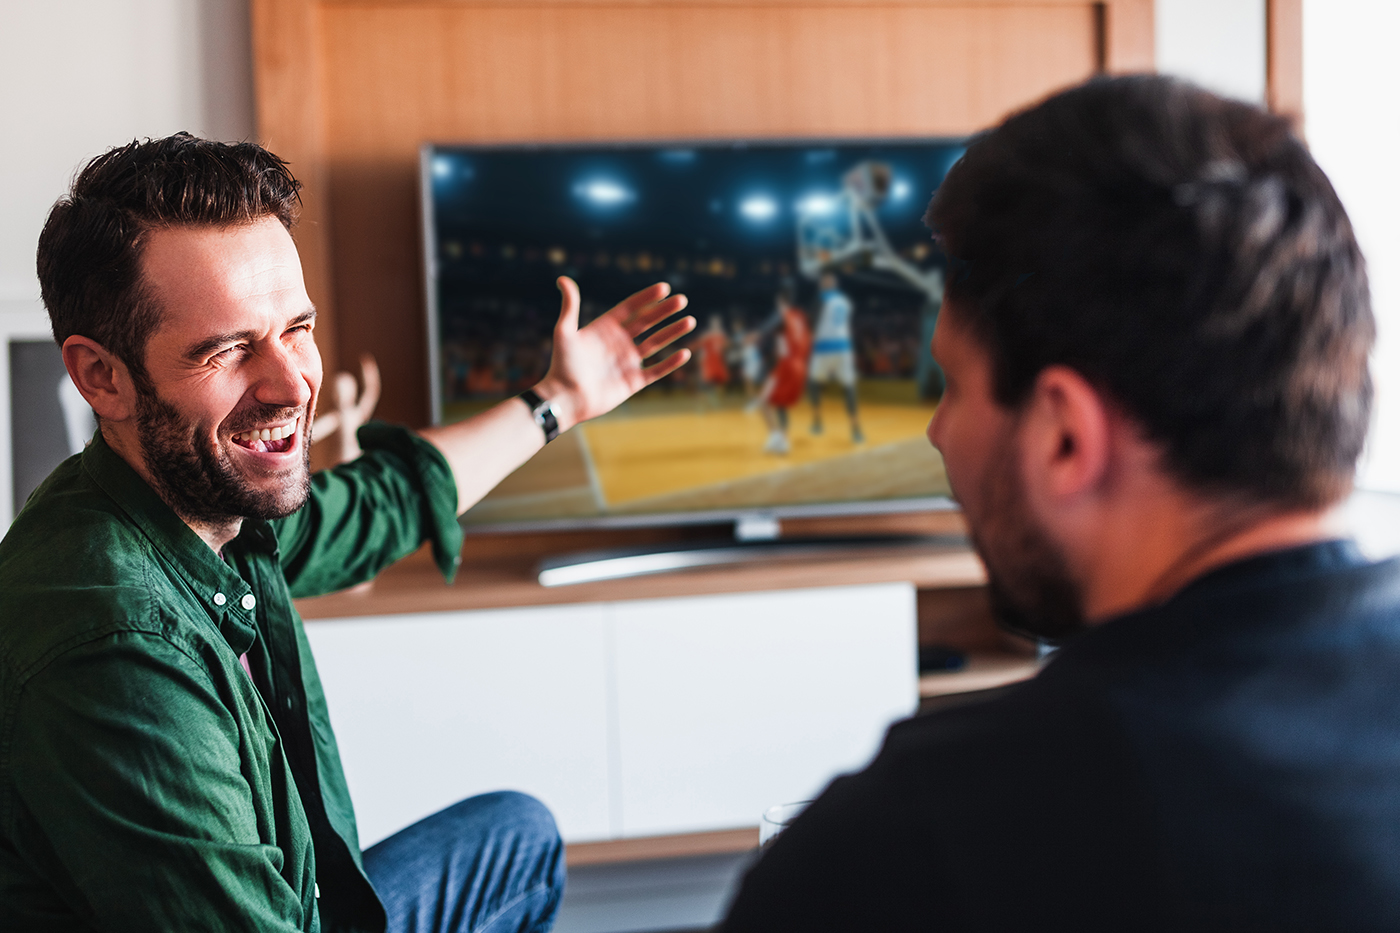 Two friends watching basketball on the tv